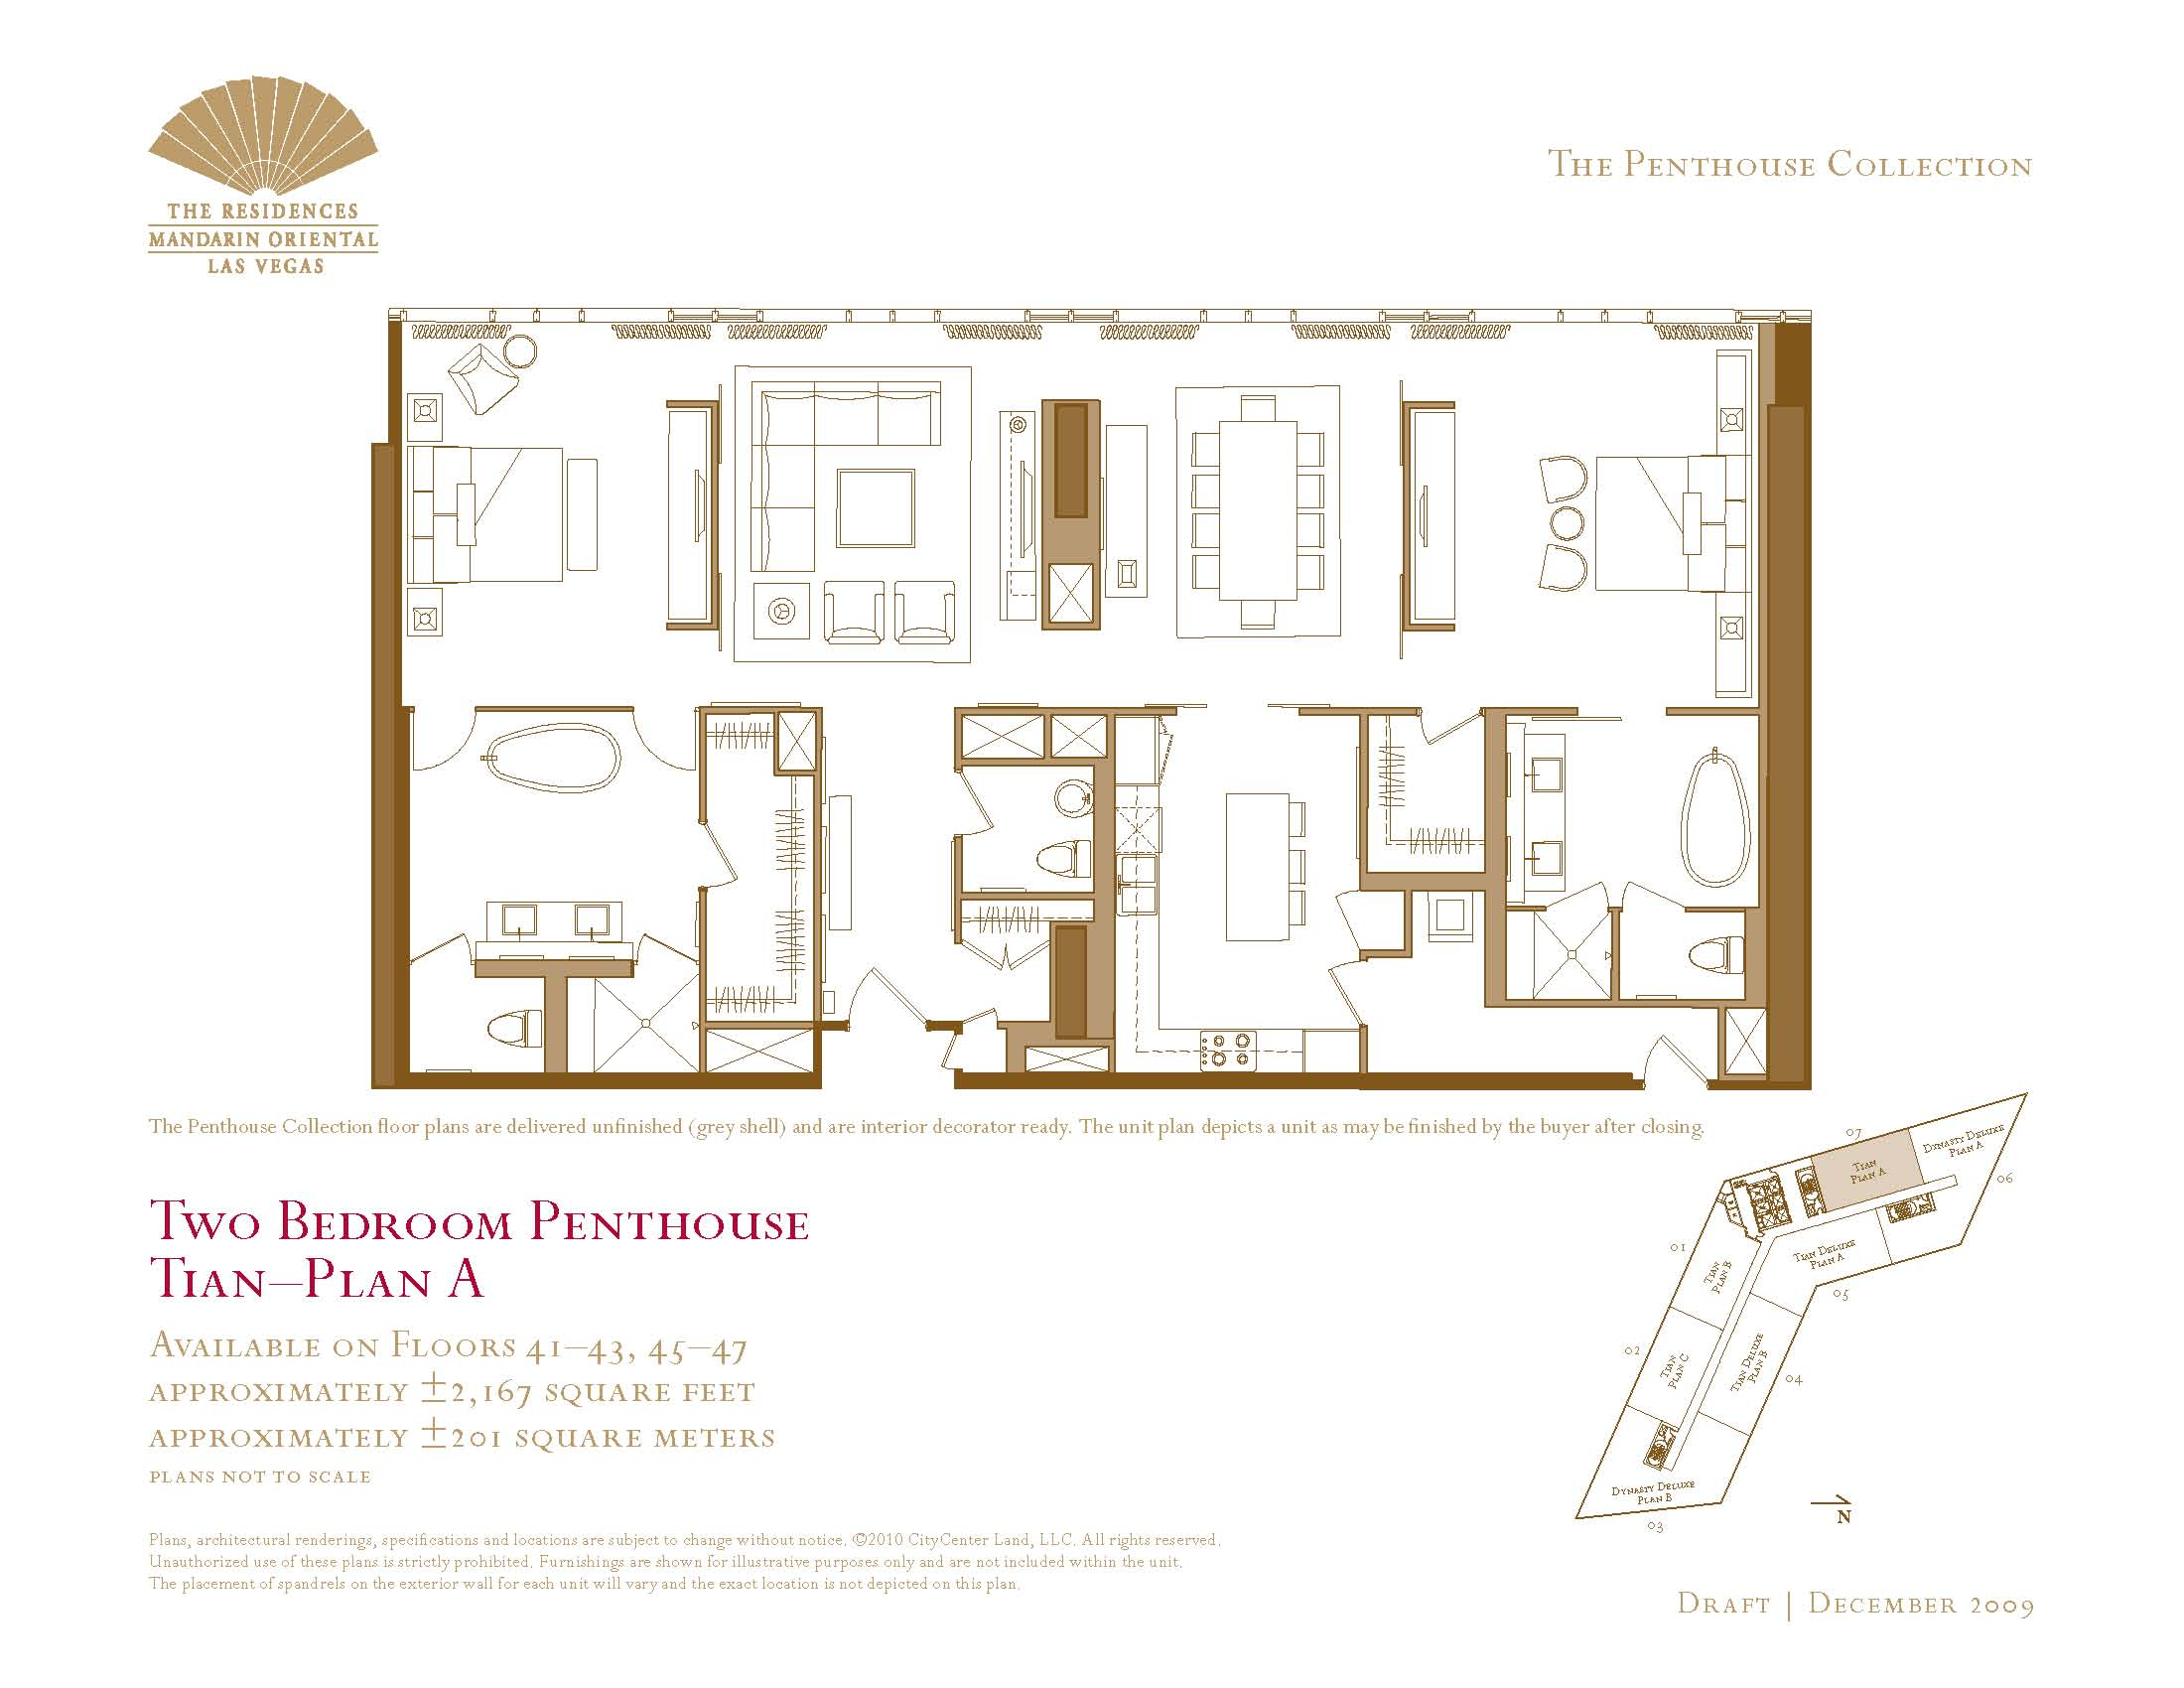 Two bedroom penthouse floor plans the mandarin oriental for Las vegas home floor plans